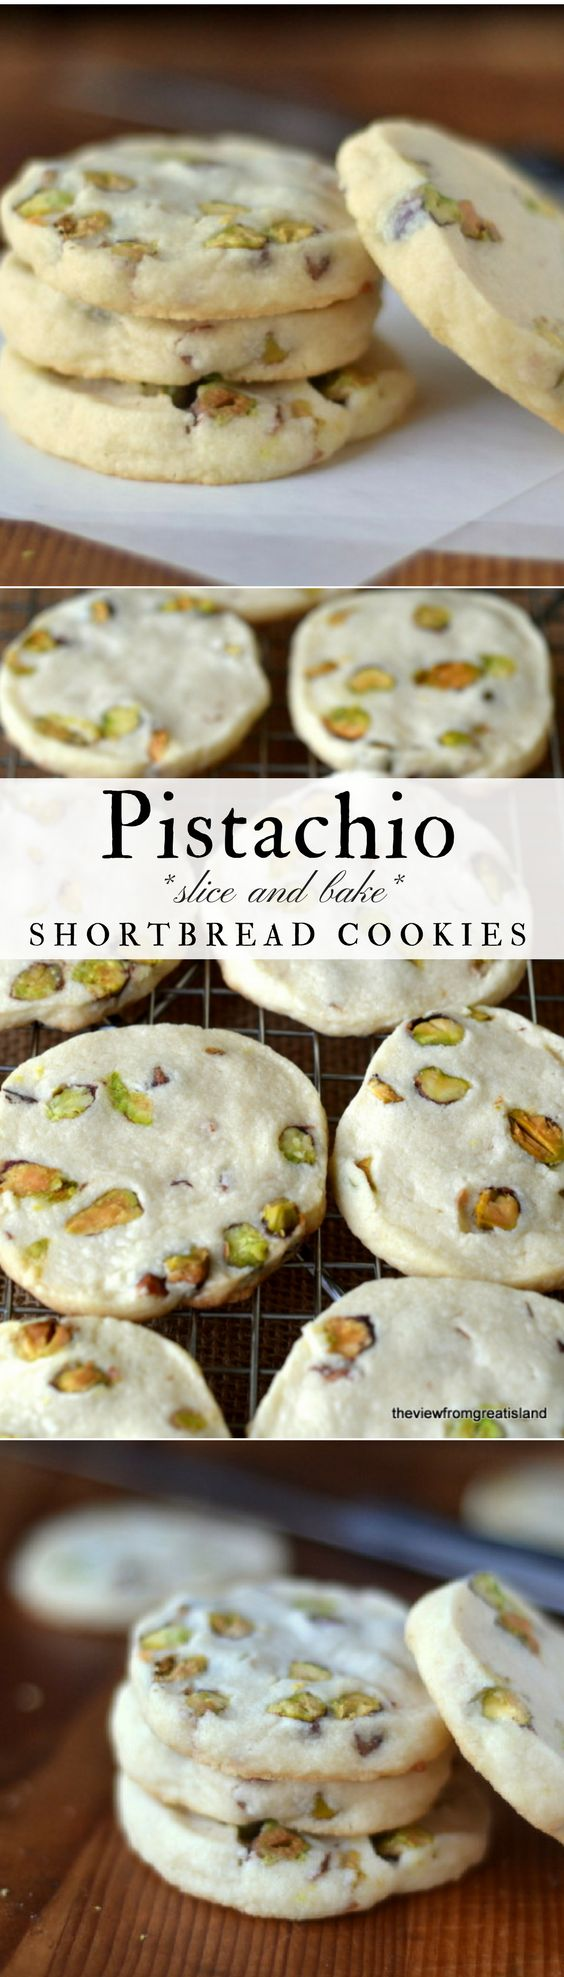 Pistachio Shortbread Cookies ~ a classic buttery shortbread slice and bake cookie loaded with fresh pistachios!